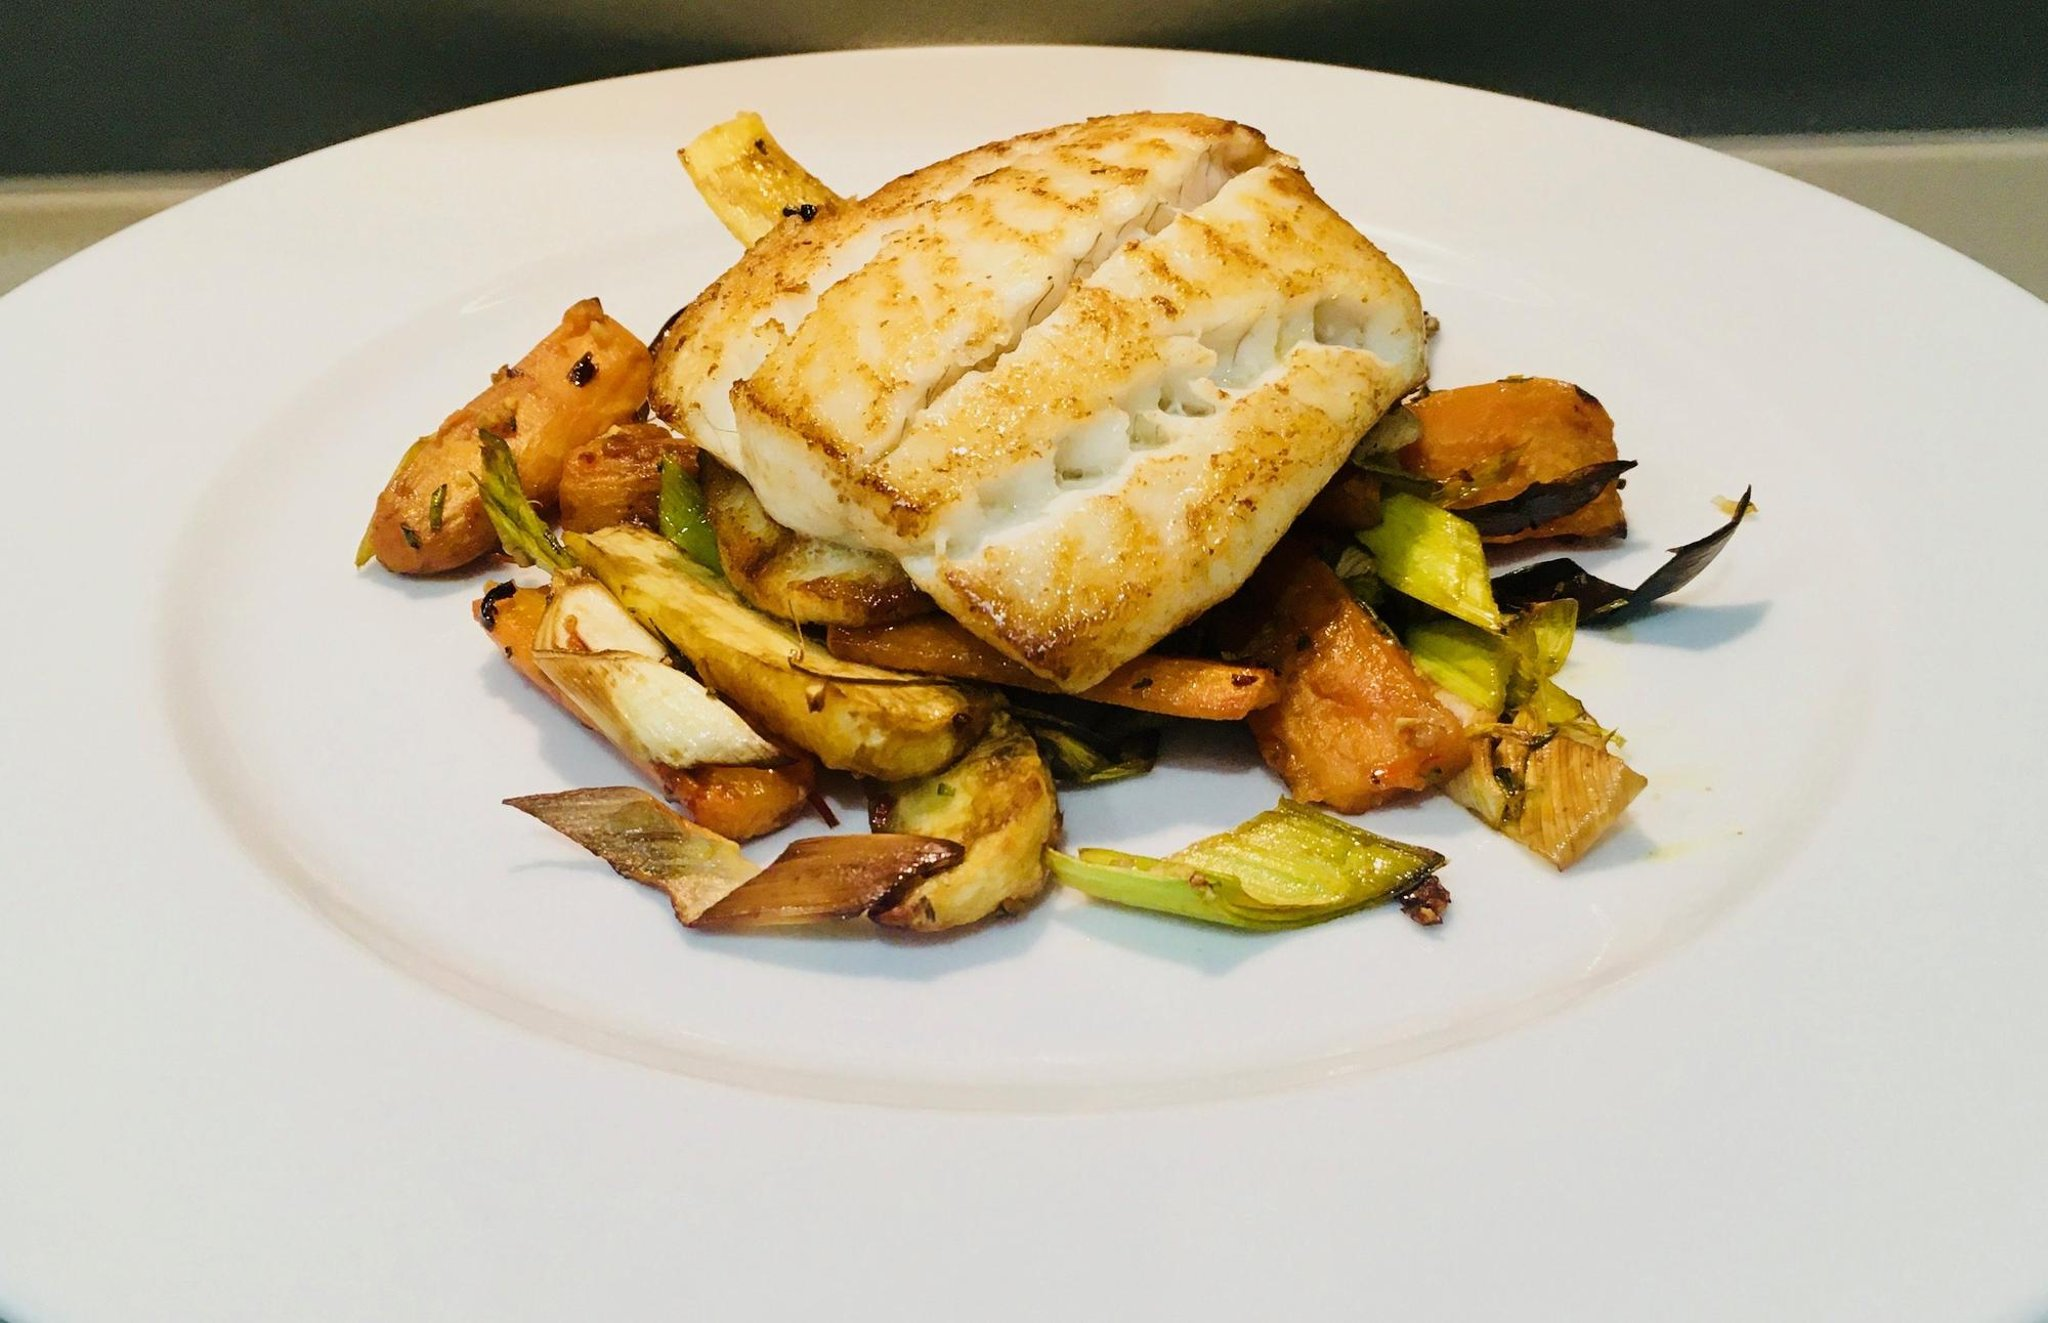 Brill Roasted Vegetables Chili Garlic Rosemary Dressing Recipes By Lawrence Murphy London News Time